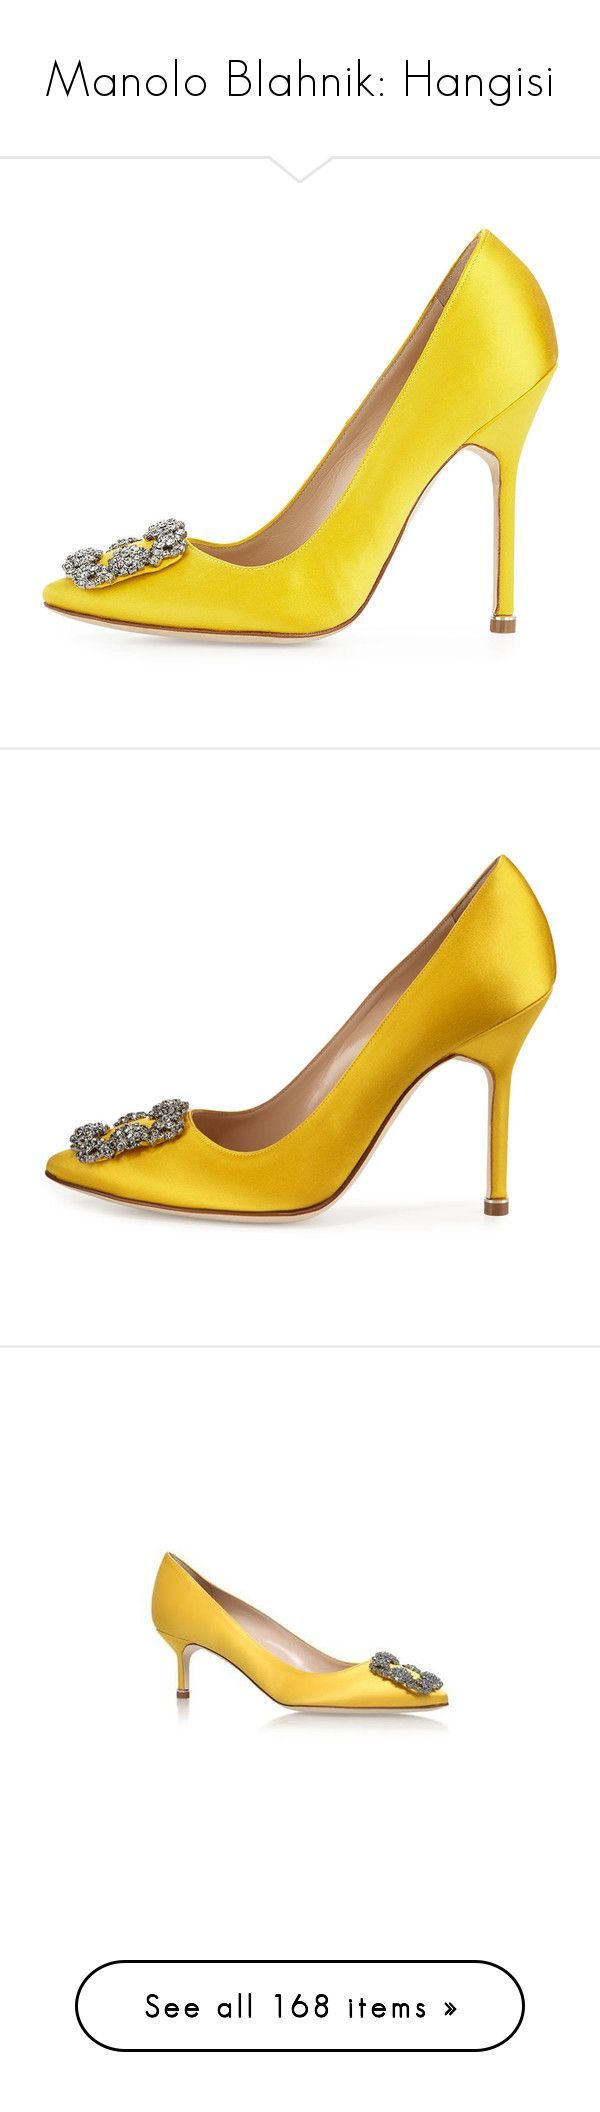 """""""Manolo Blahnik: Hangisi"""" by livnd ❤ liked on Polyvore featuring shoes, pumps, manolo blahnik pumps, satin shoes, yellow shoes, yellow pumps, satin pumps, crystal pumps, buckle shoes and pointed toe high heel pumps #manoloblahnikpumps"""